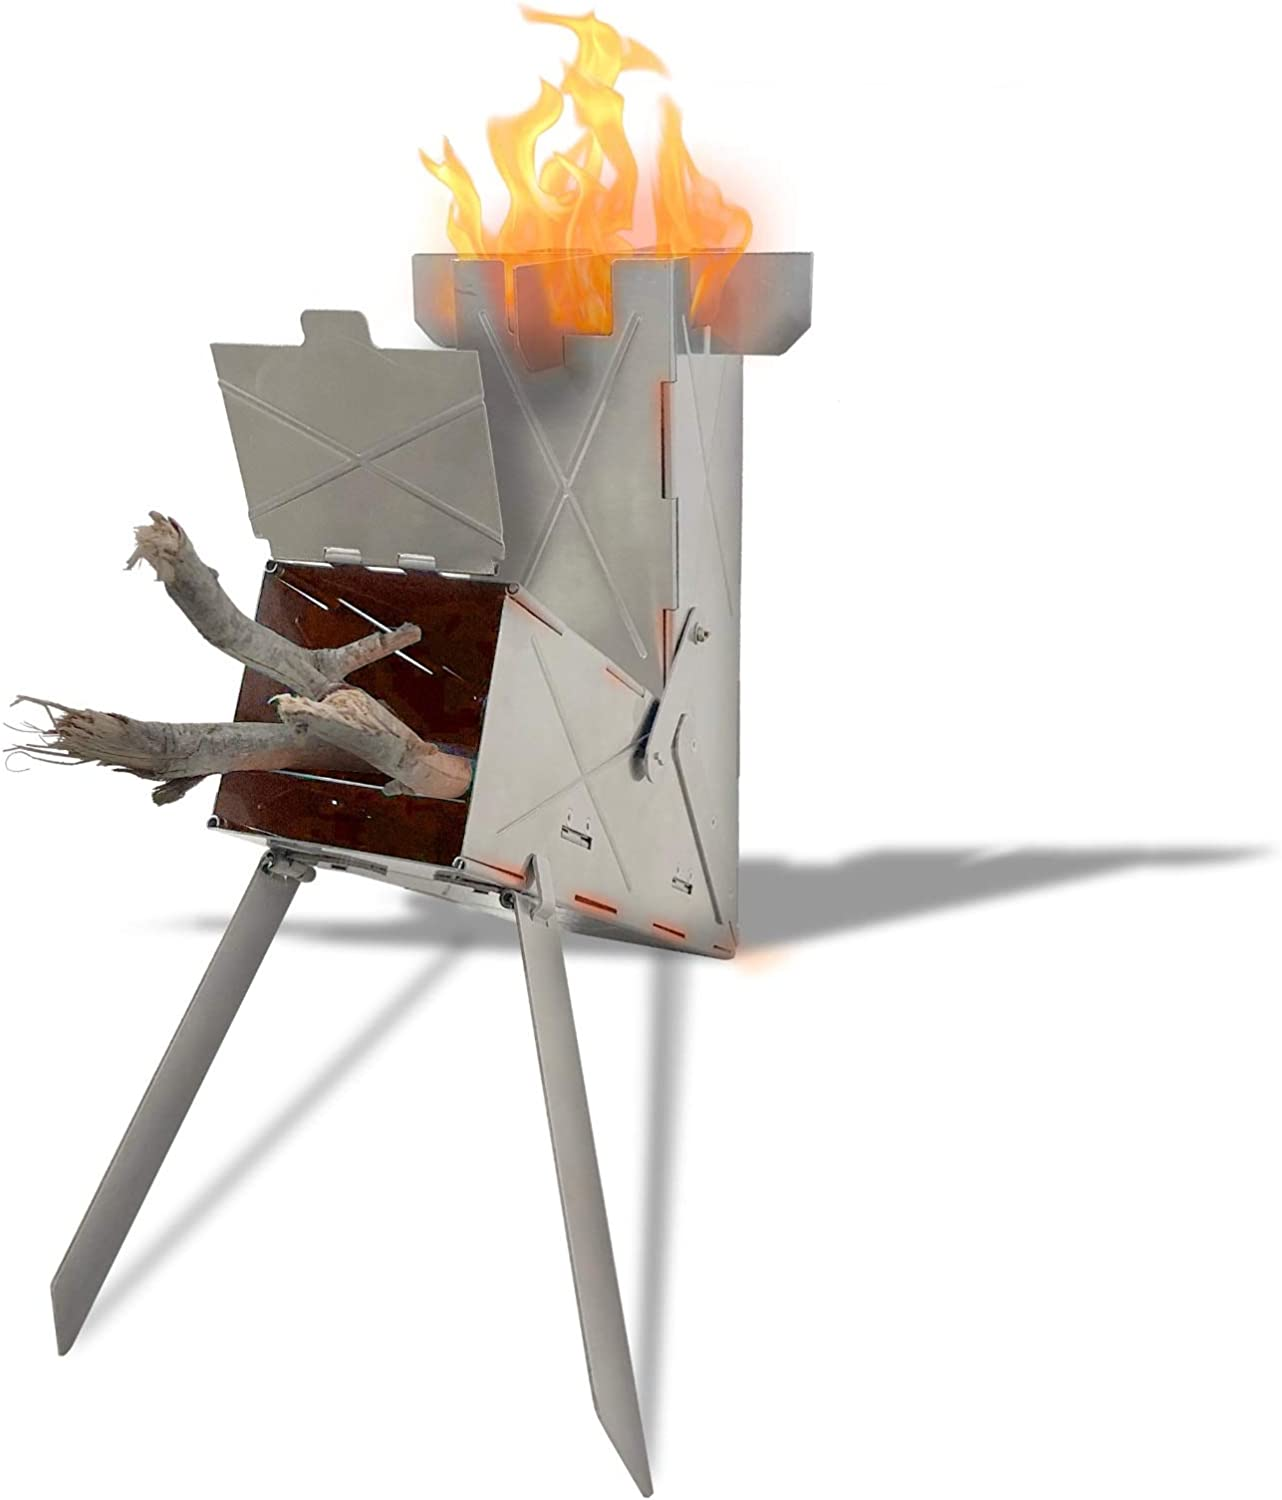 This is an image of a V-shaped stove supported by two foldable metal legs with fire coming out of it.